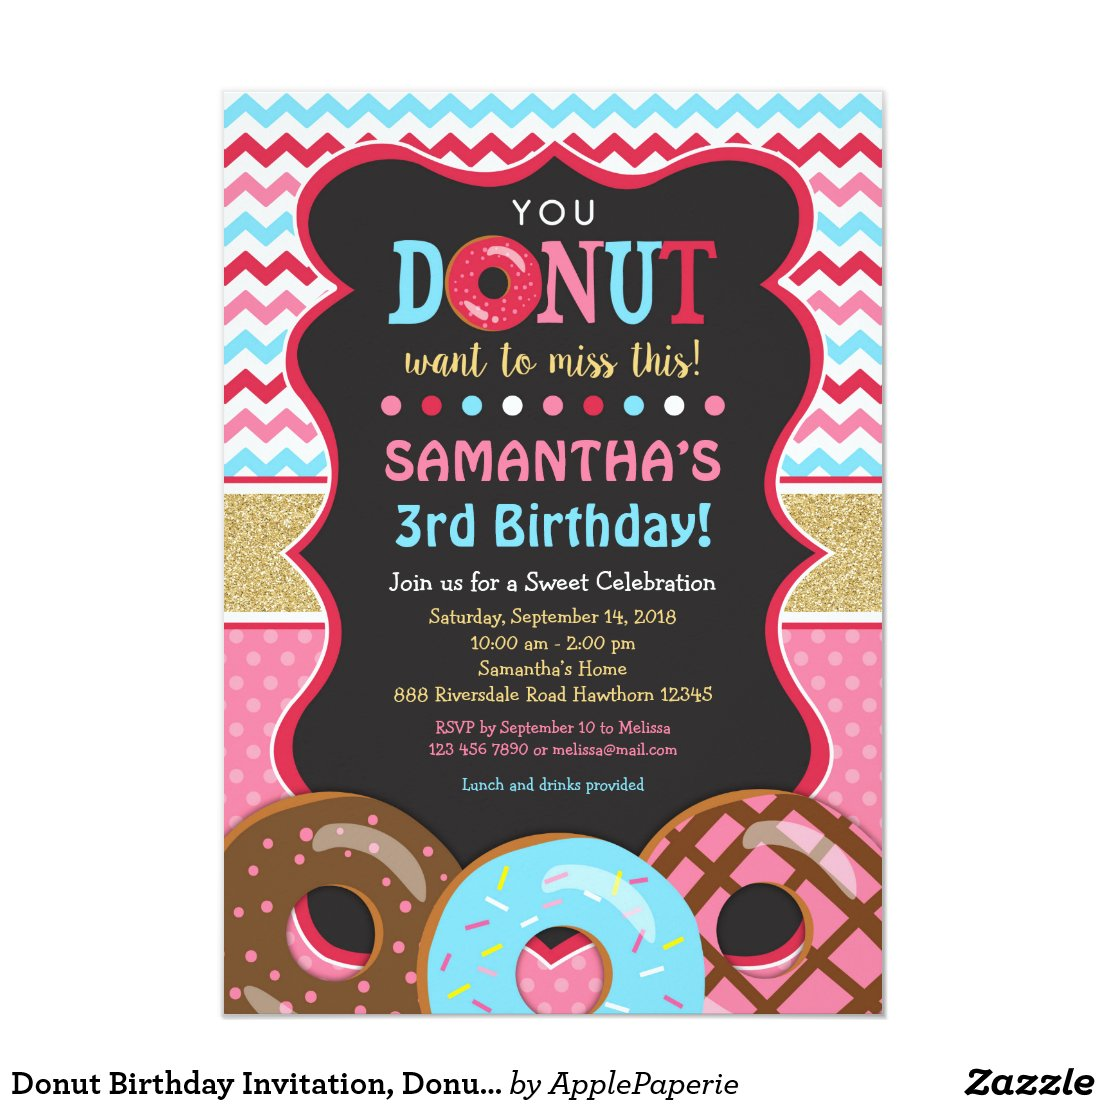 Donut Birthday Invitation, Donut Invitation